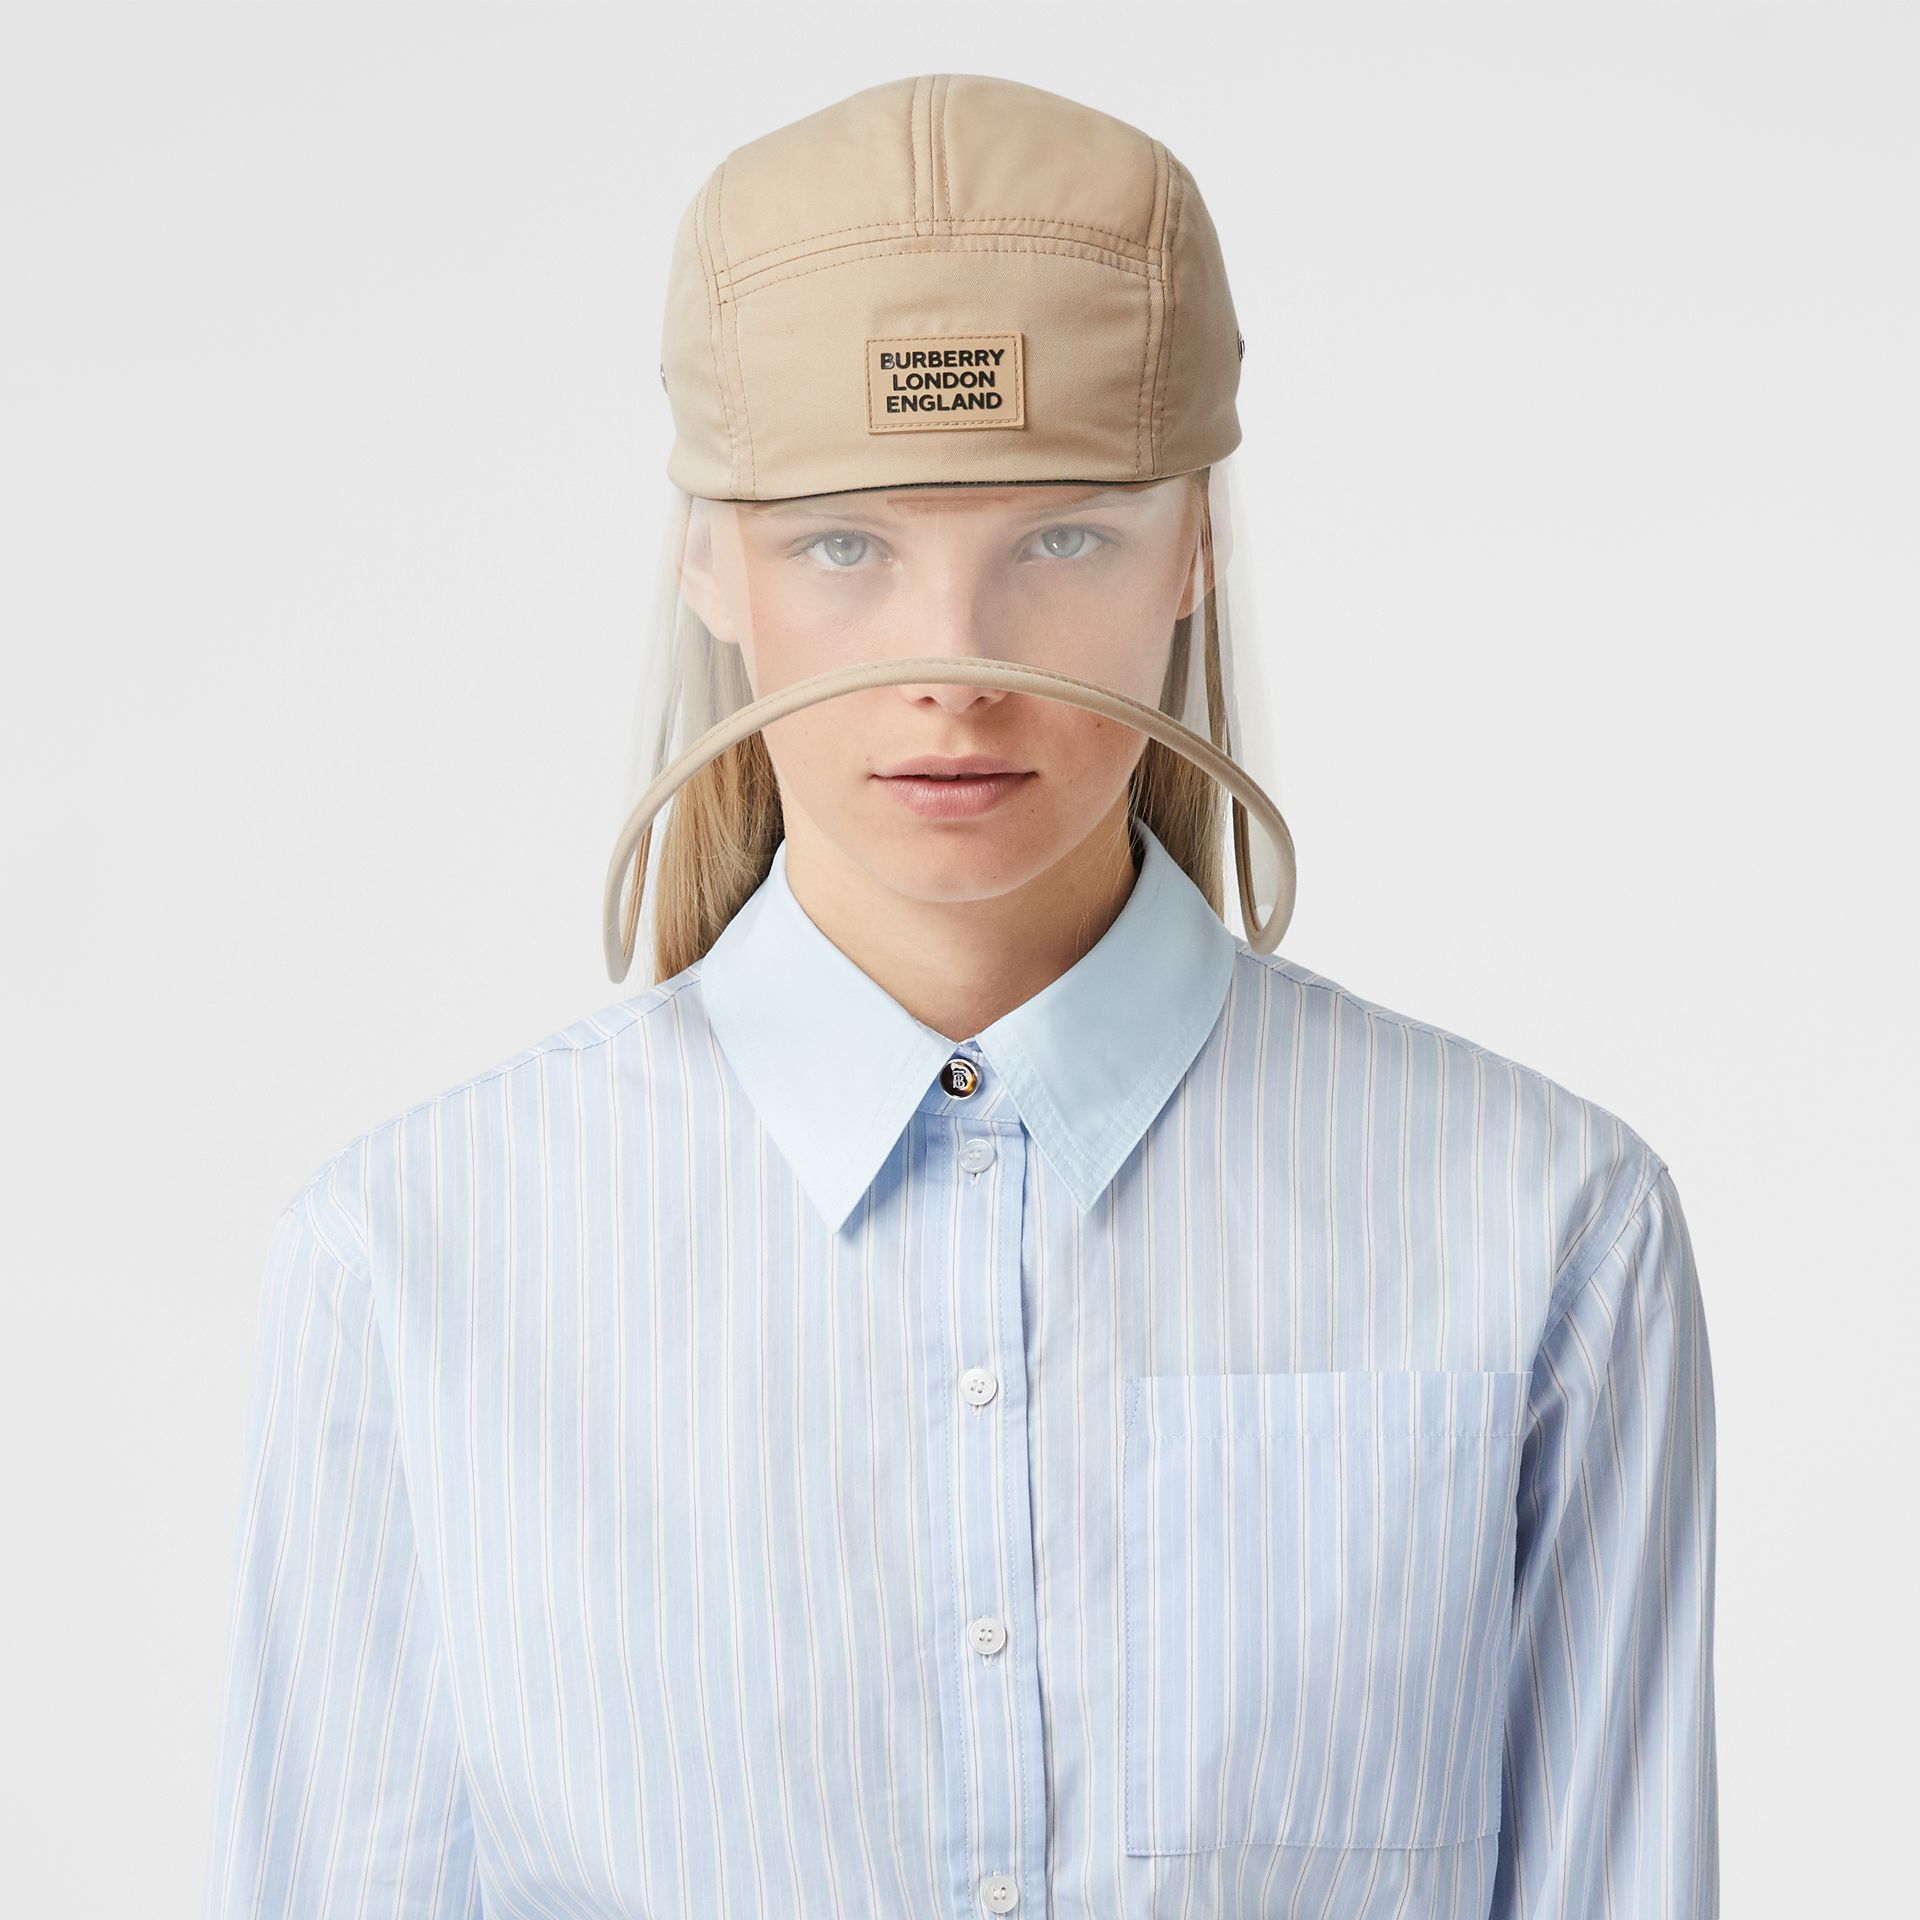 Casquette à bords larges transparente en sergé de coton - Exclusivité en ligne (Fauve Doux) | Burberry - photo de la galerie 4